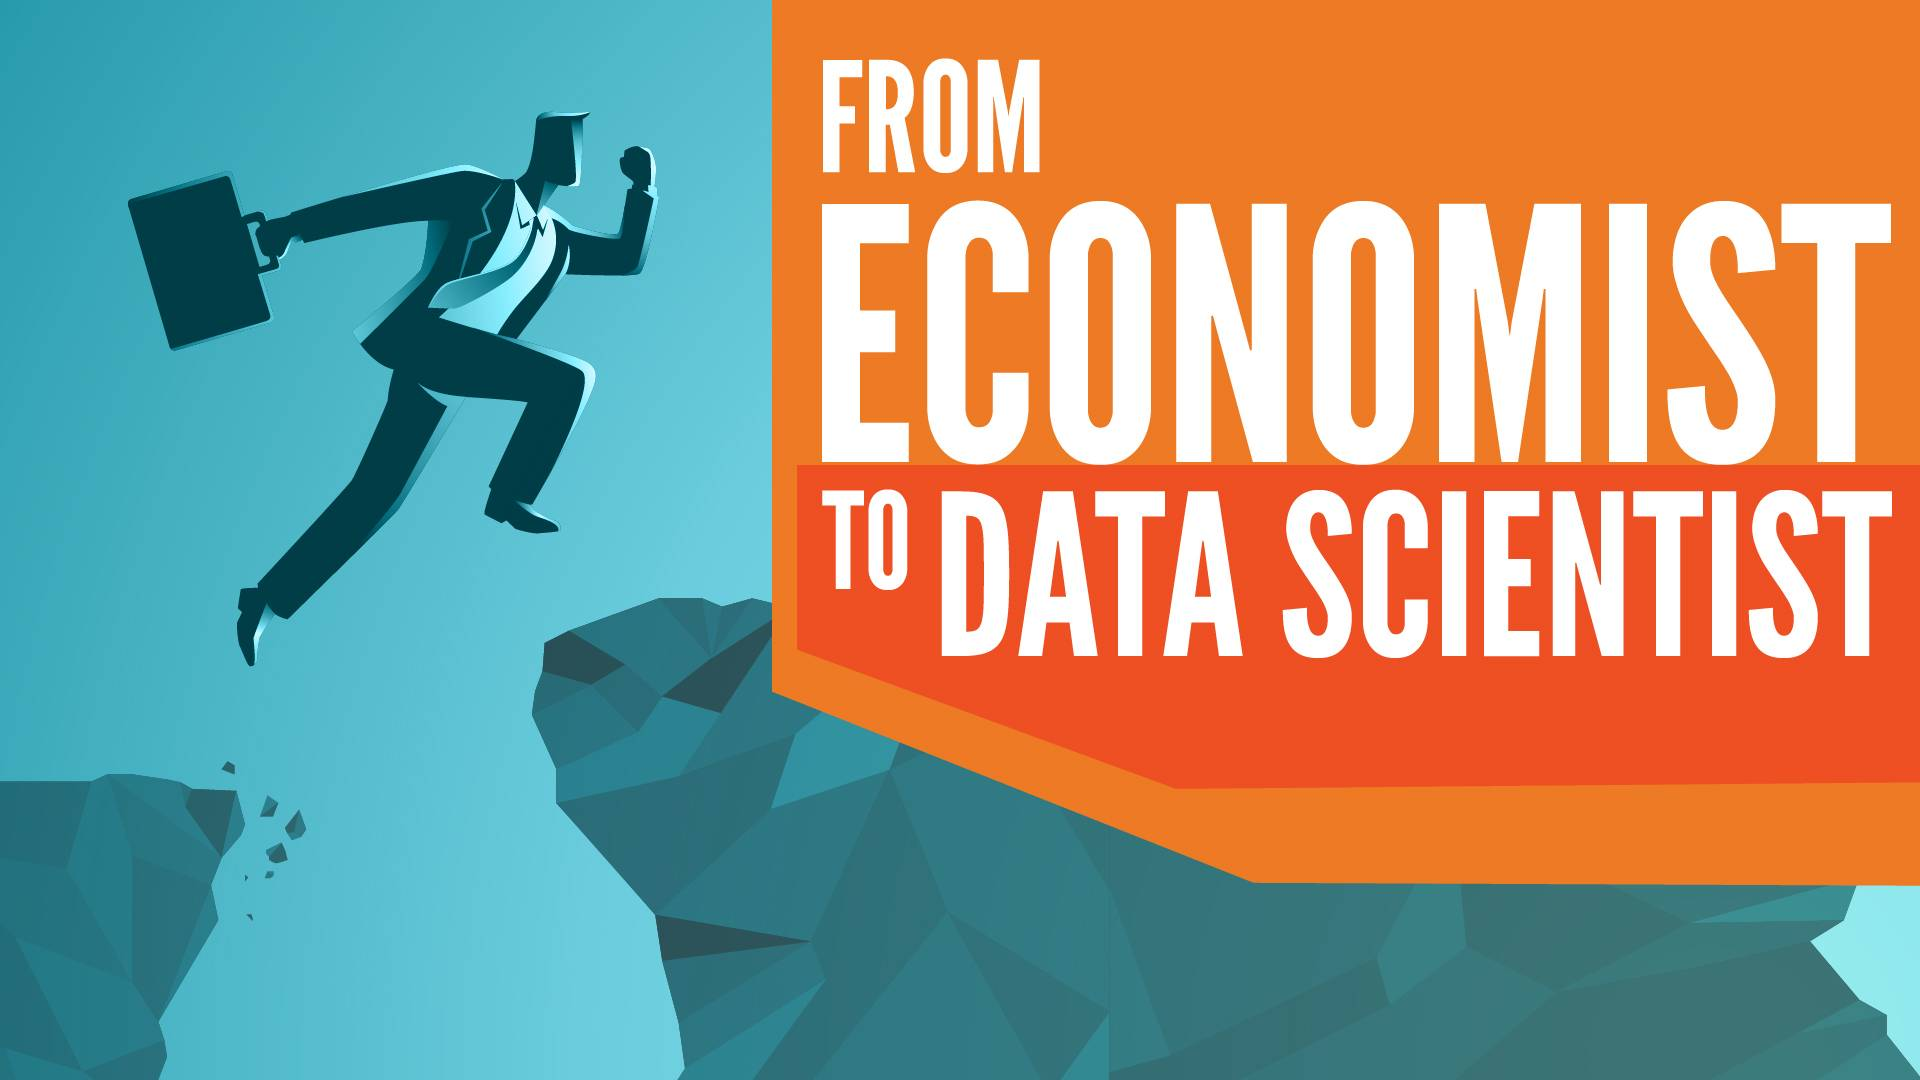 transition to data science from economics, from economist to data scientist